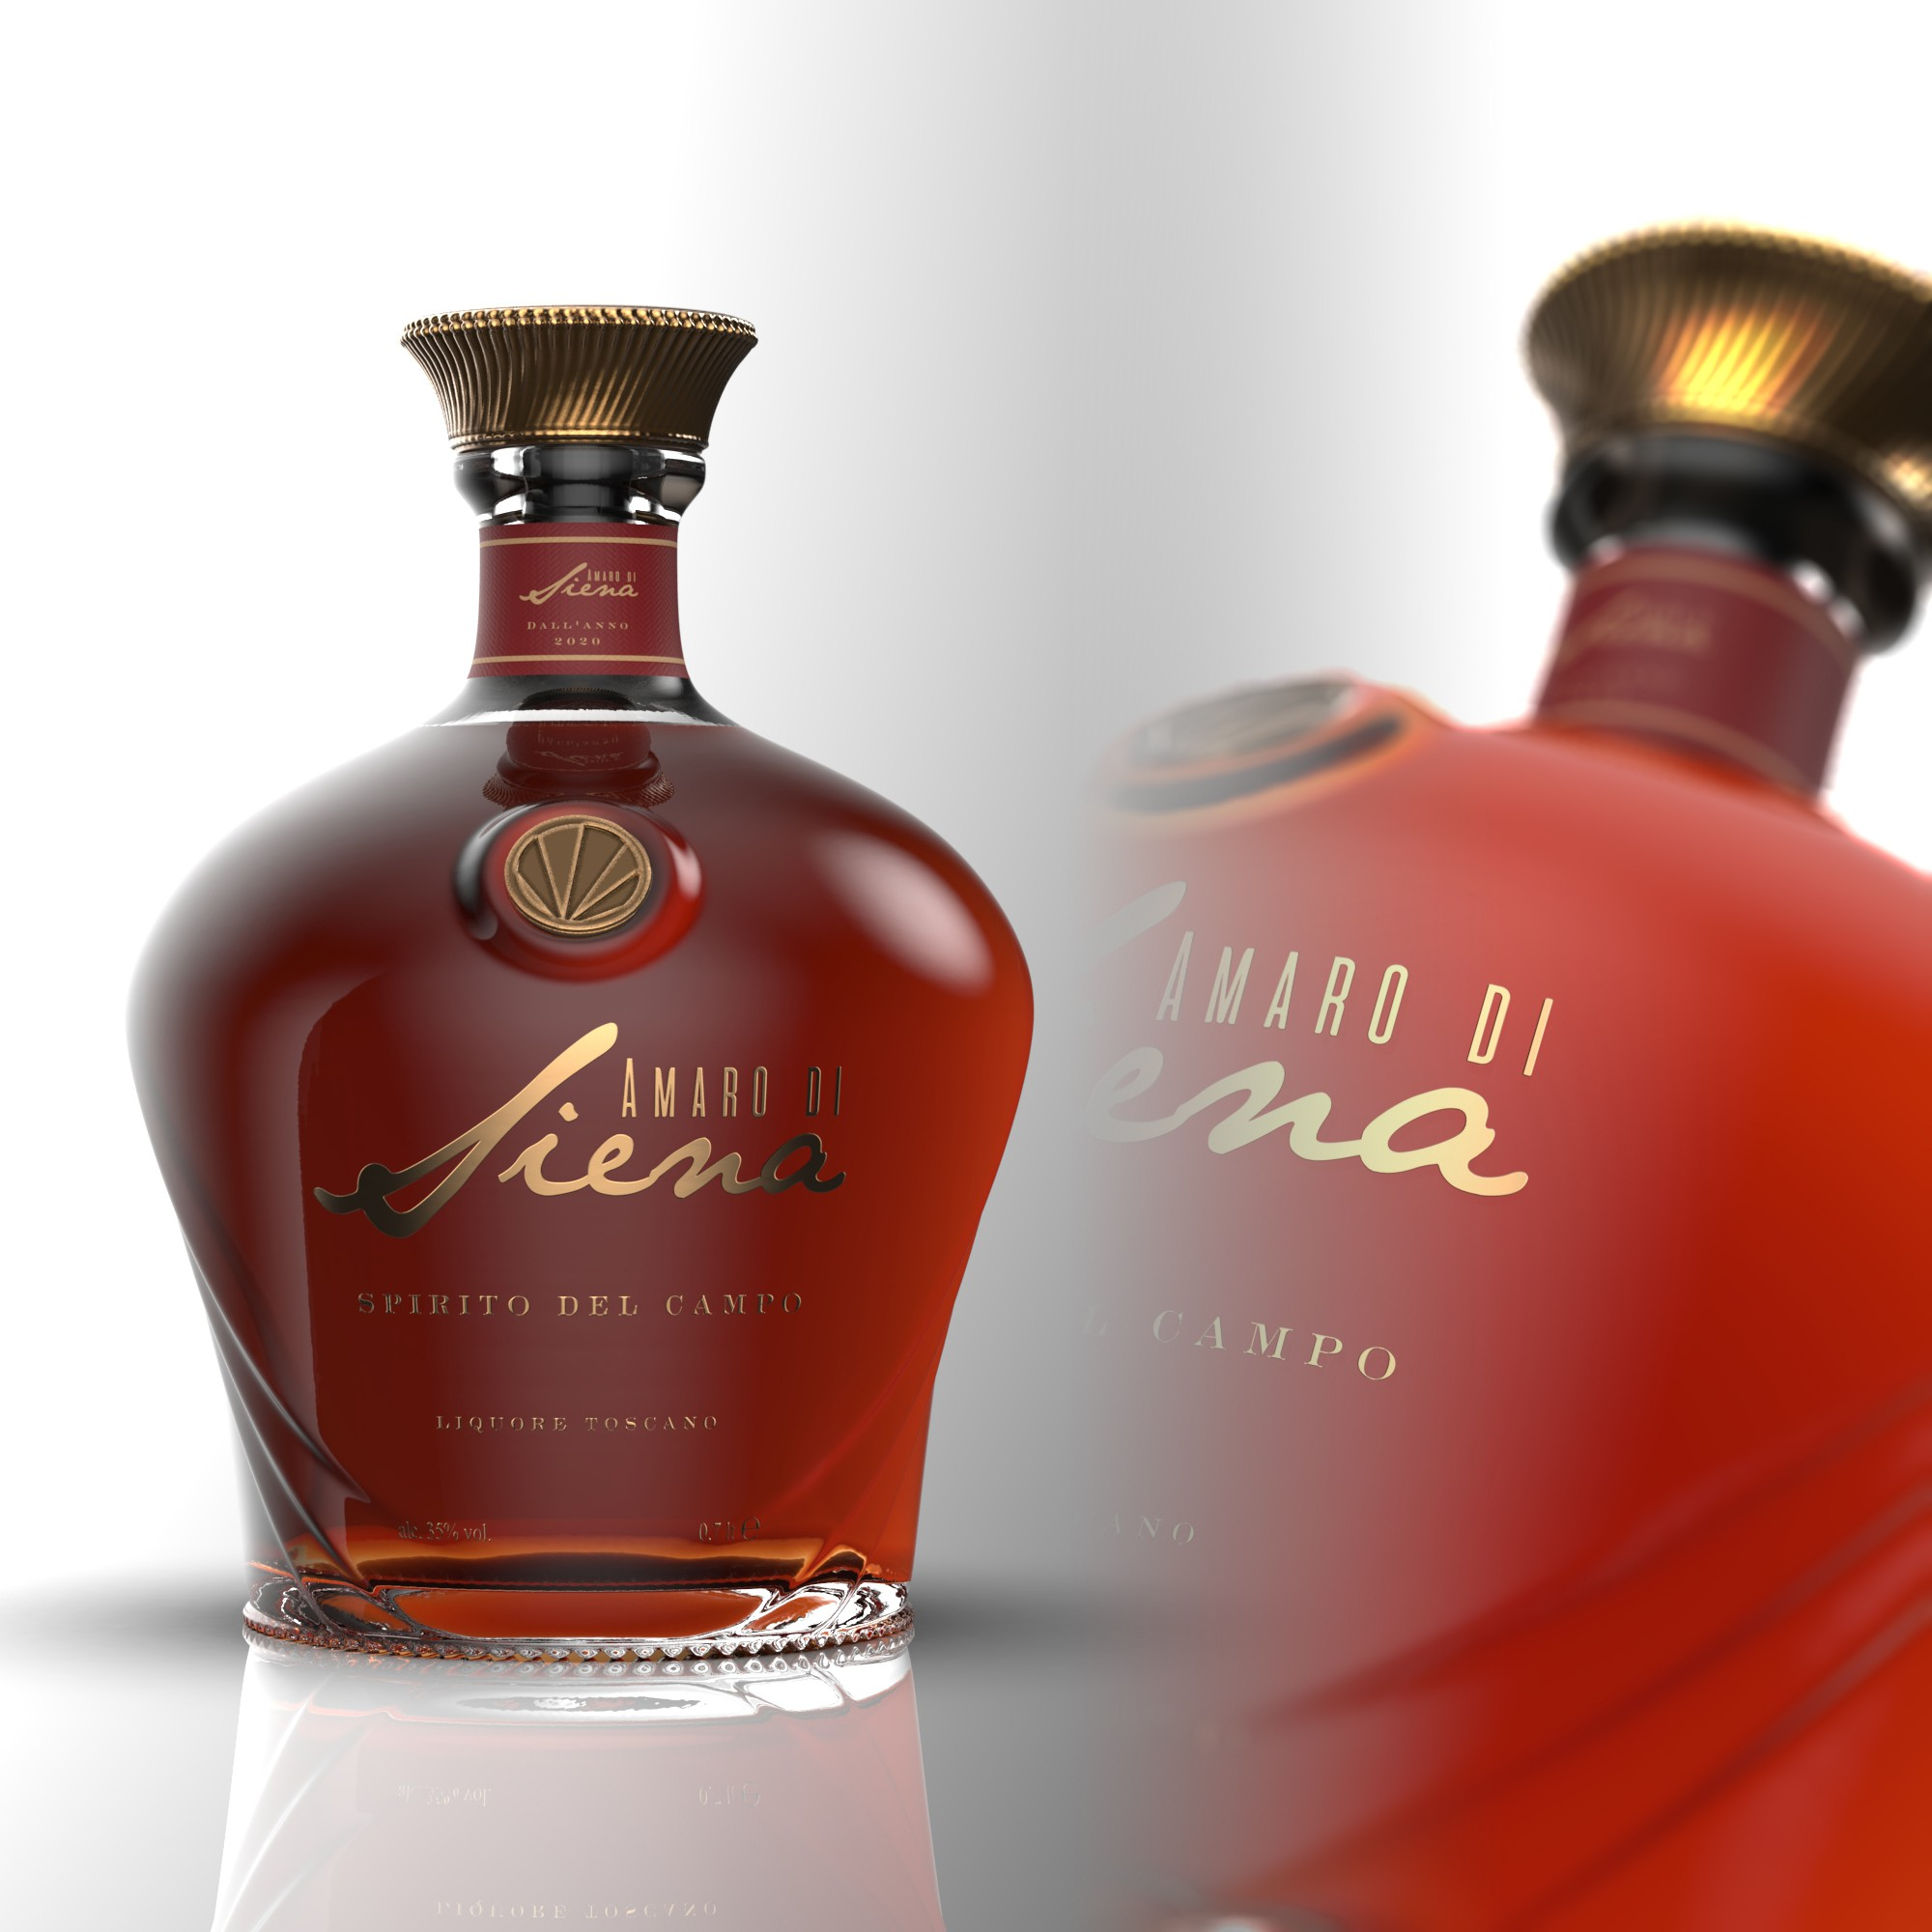 Logo, bottle and label for a brand new italian amaro (bitter)